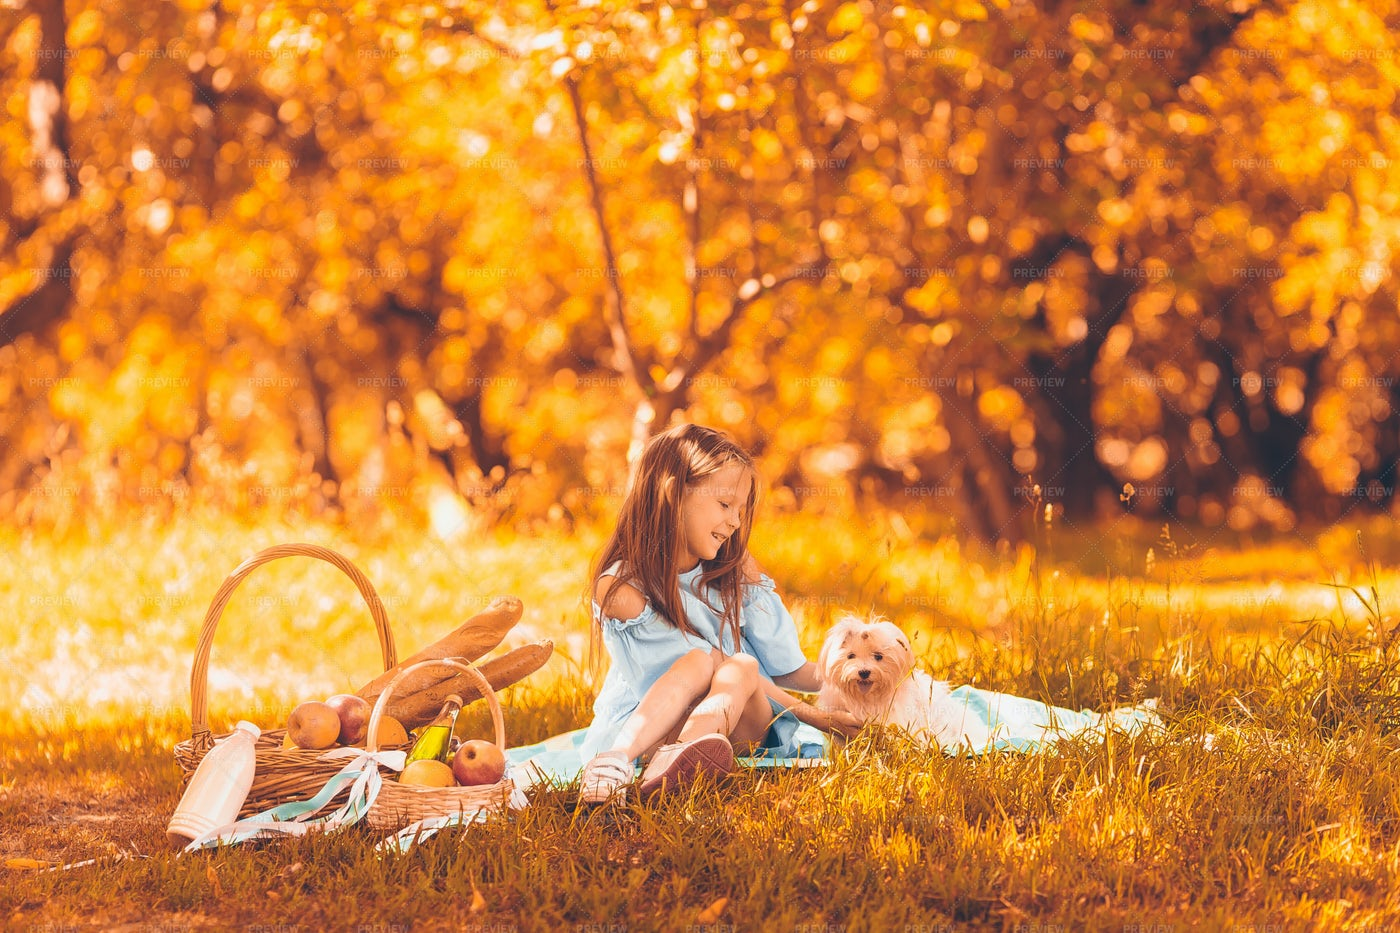 Girl And Dog In The Park: Stock Photos